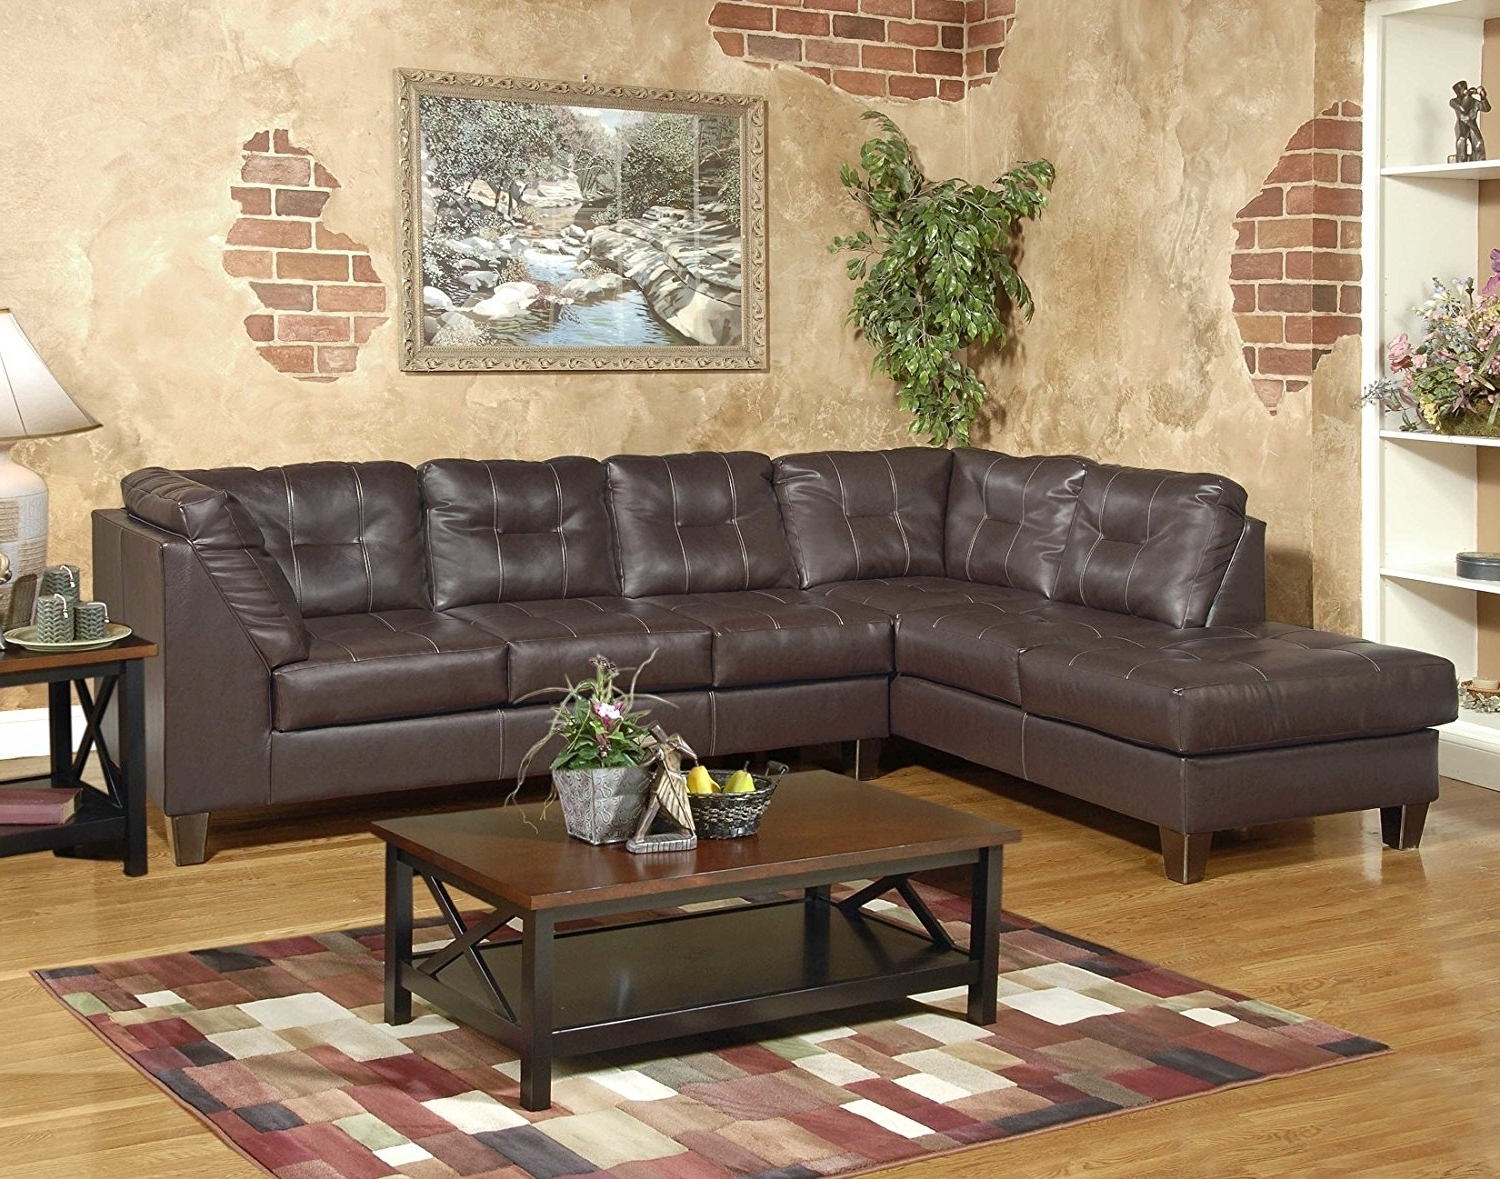 Well Known Amazon: Roundhill Furniture Marinio Chocolate Faux Leather With Regard To Chocolate Sectional Sofas (View 10 of 15)